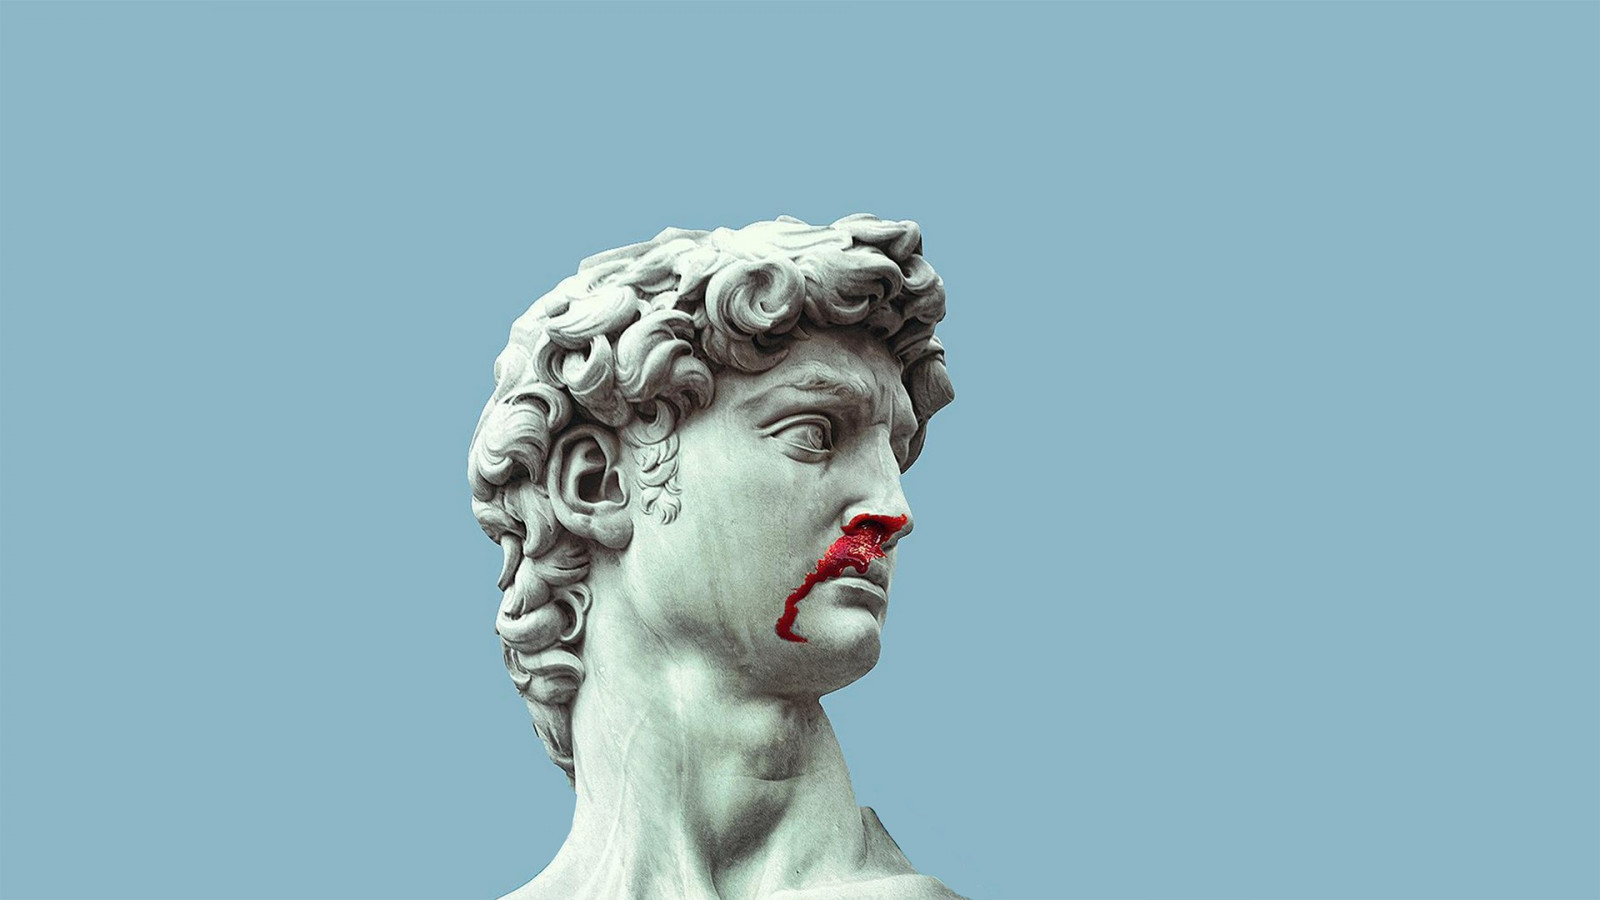 Vaporwave Car Wallpaper Wallpaper 1920x1080 Px Blood Marble Statue Of David